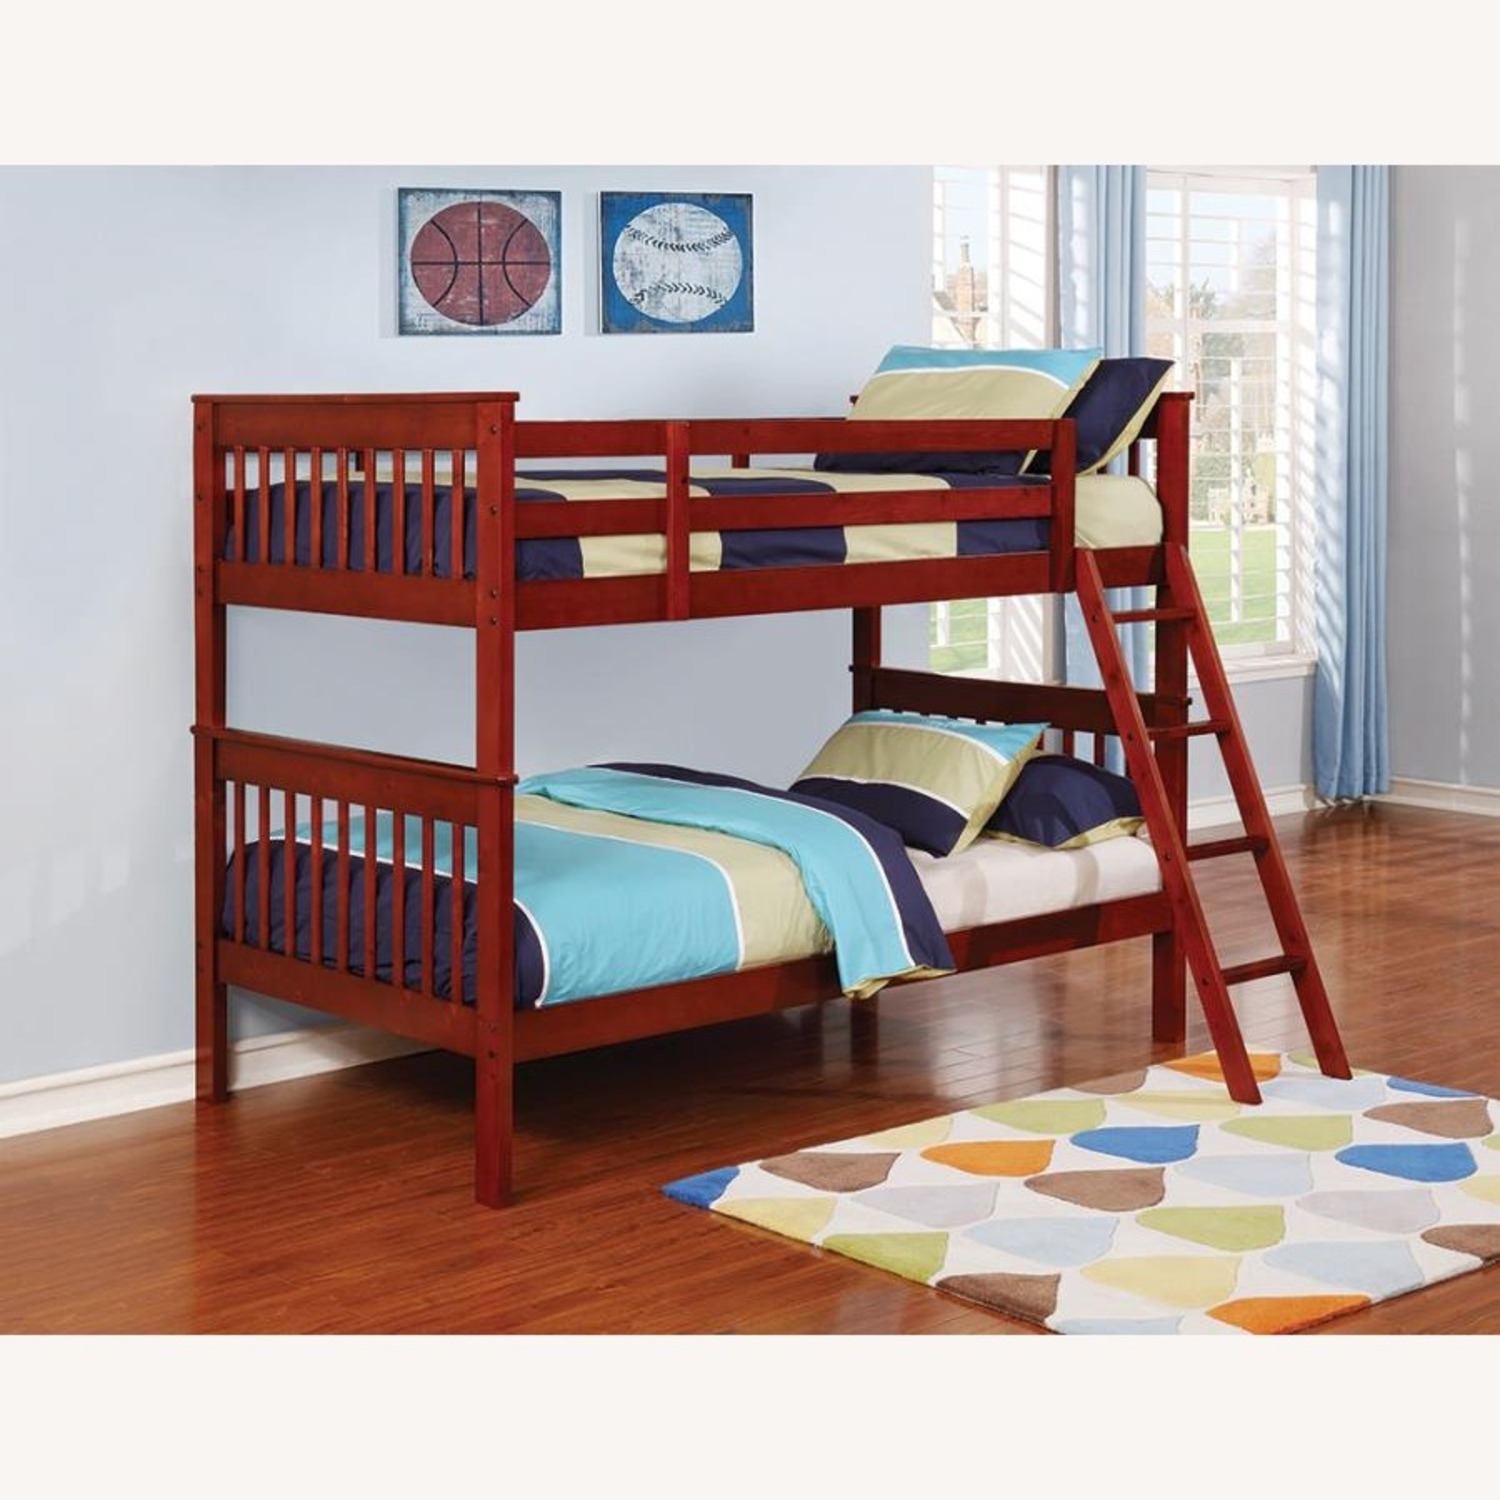 Bunk Bed In Chestnut W/ Slatted Head & Footboards - image-1